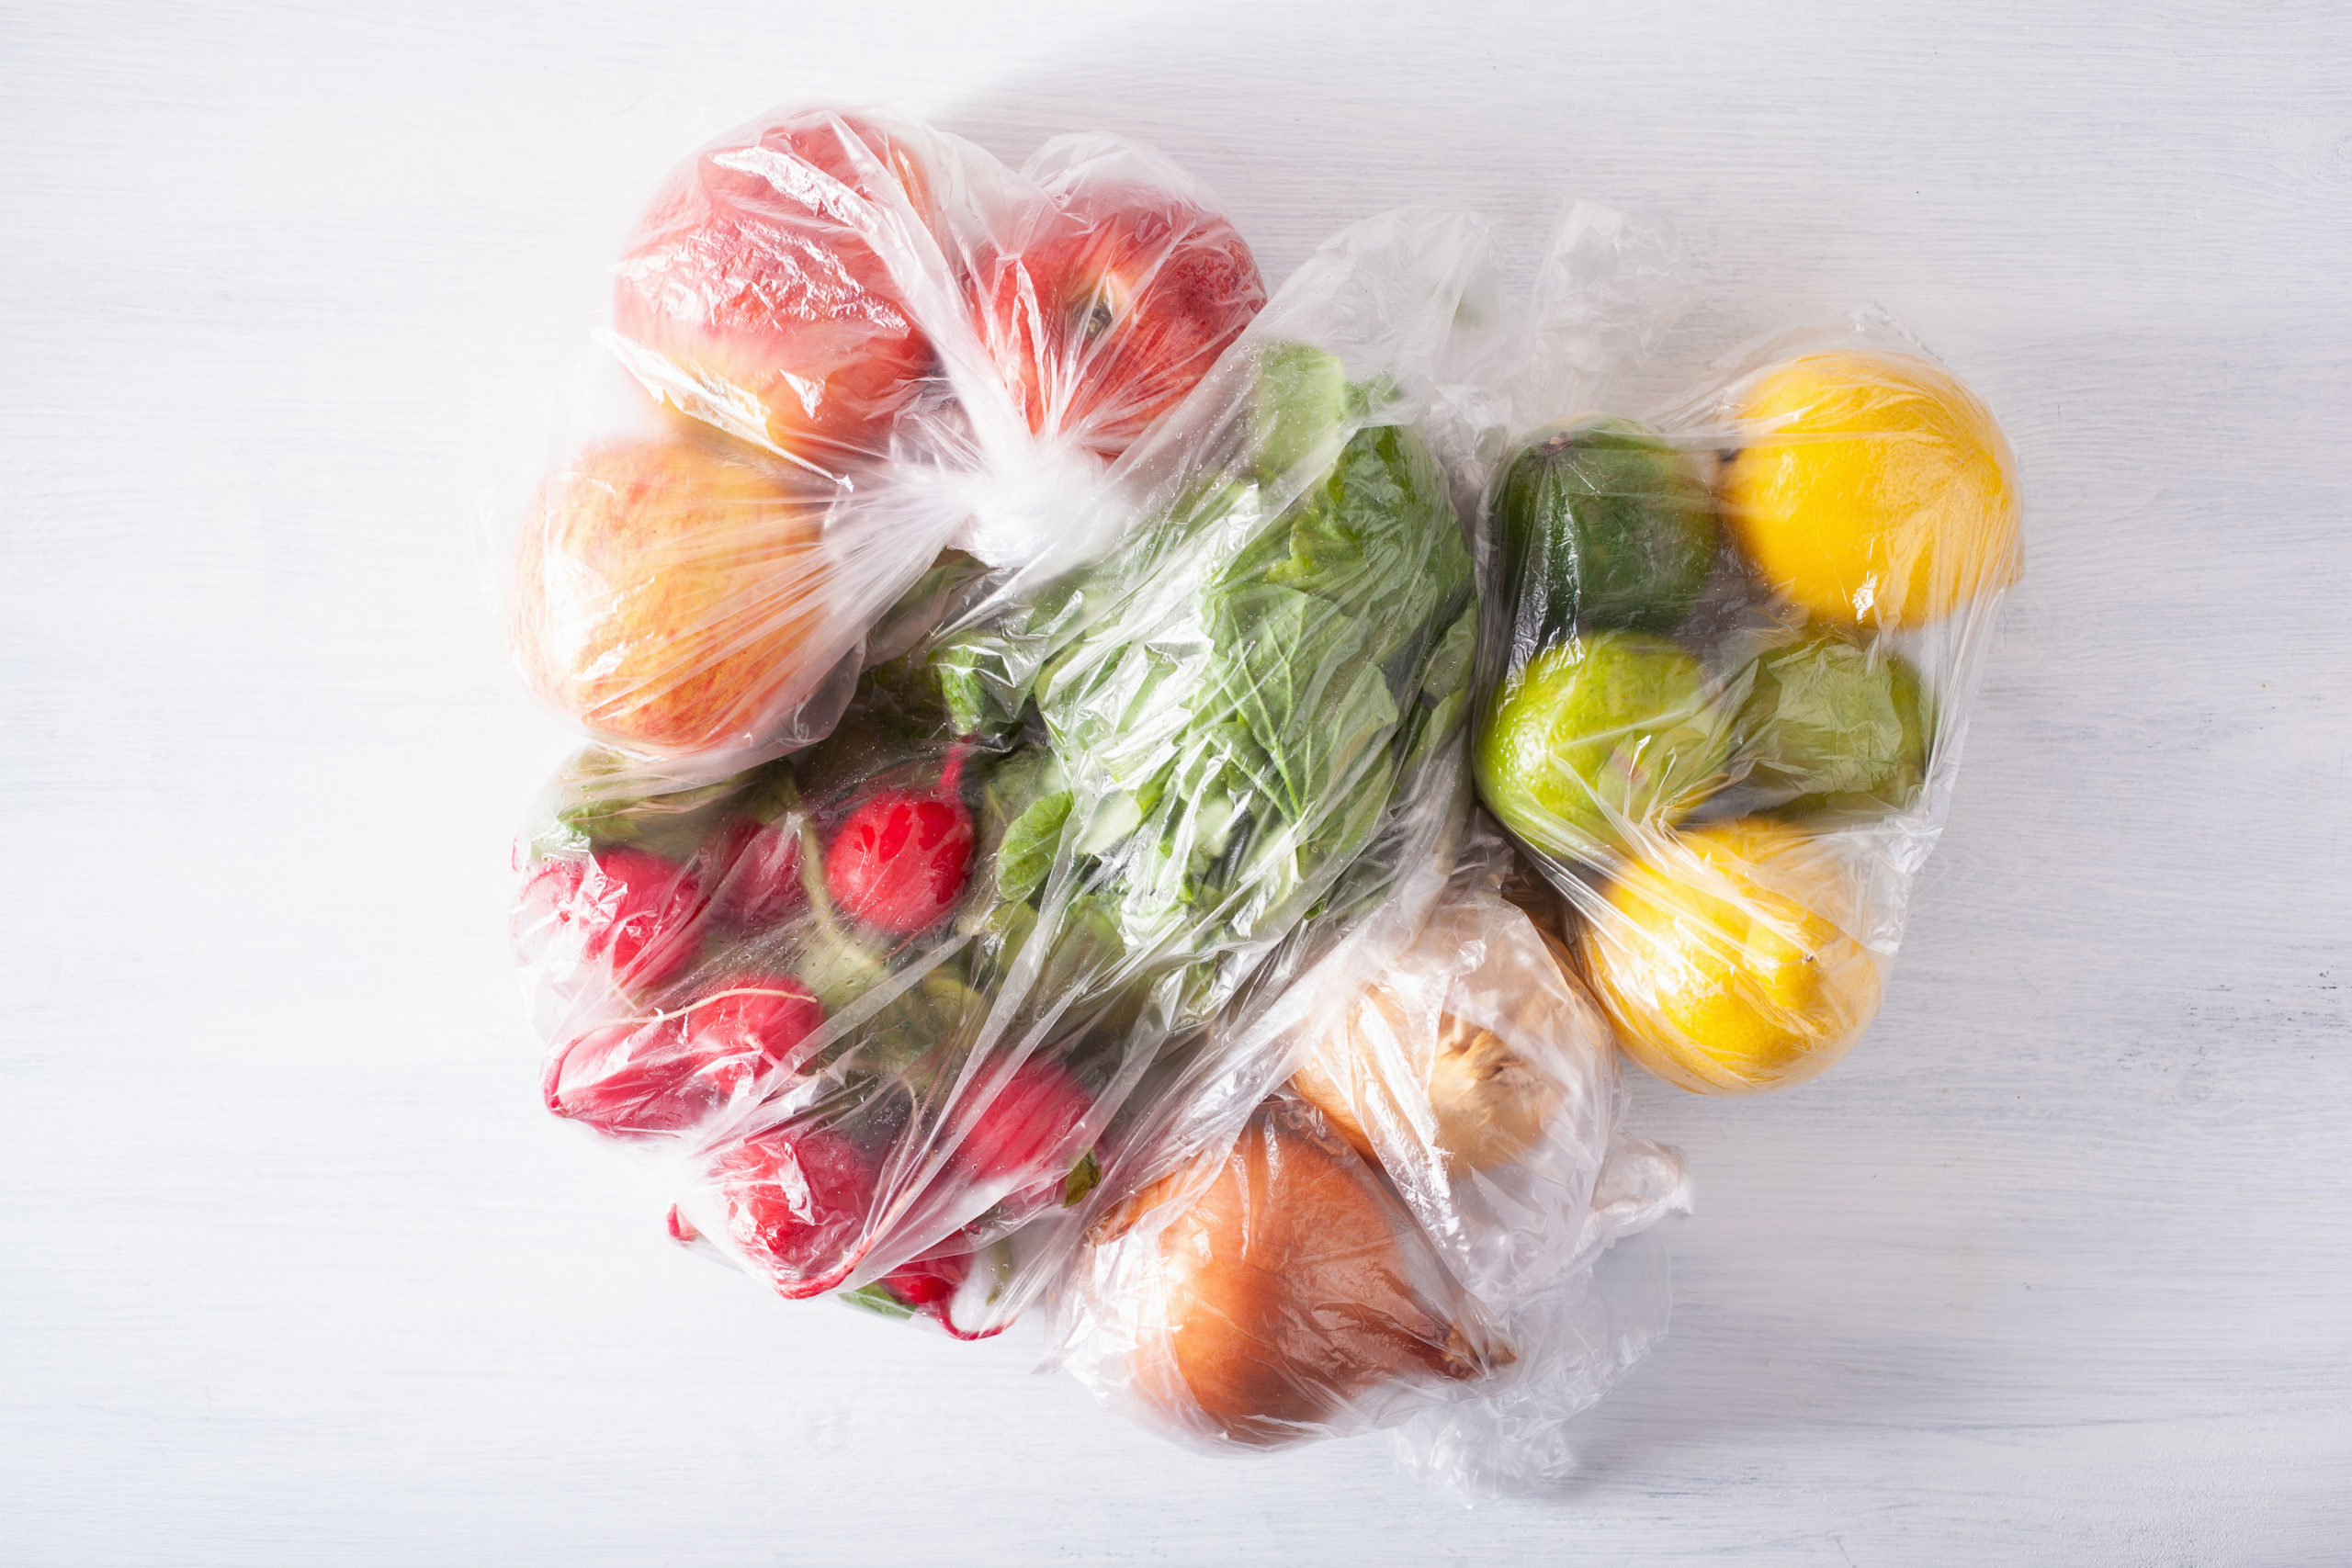 LDPE grocery bags with fruit and vegetables